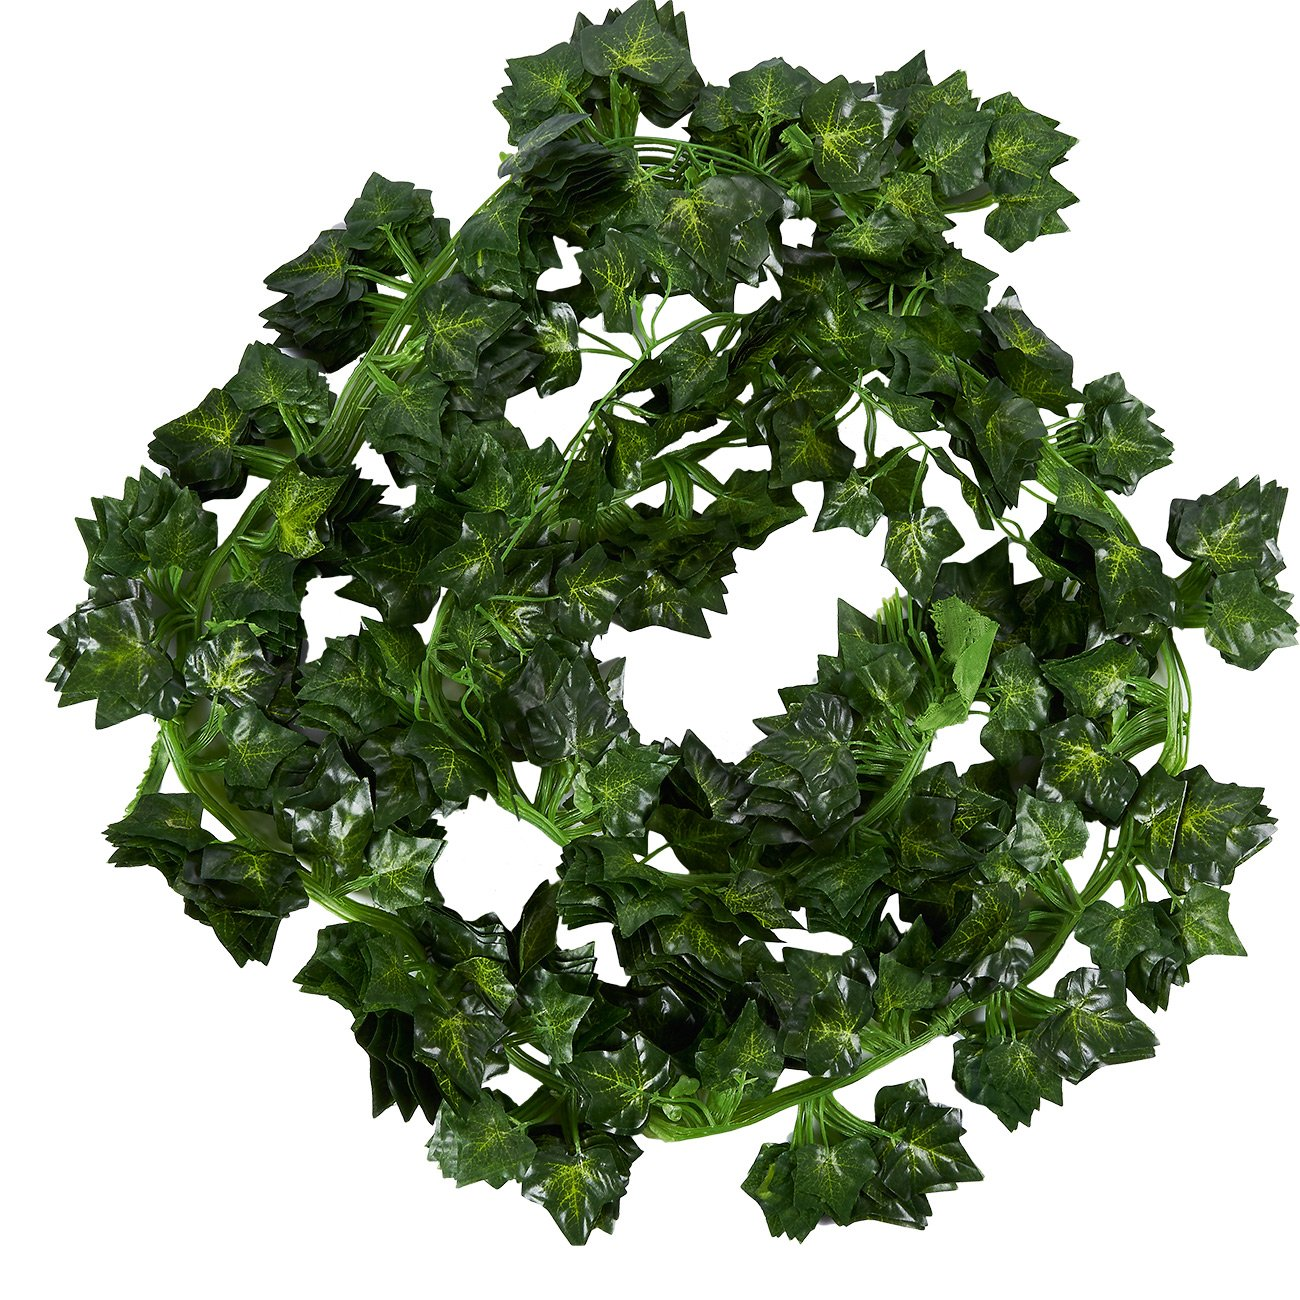 Juvale Artificial Ivy Garland - 12-Pack Fake Vines, Greenery Ivy Leaf, Artificial Hanging Garland for Home, Wedding, Party, Restaurant Decor, Office, Wall Décor, 2.4 Yards